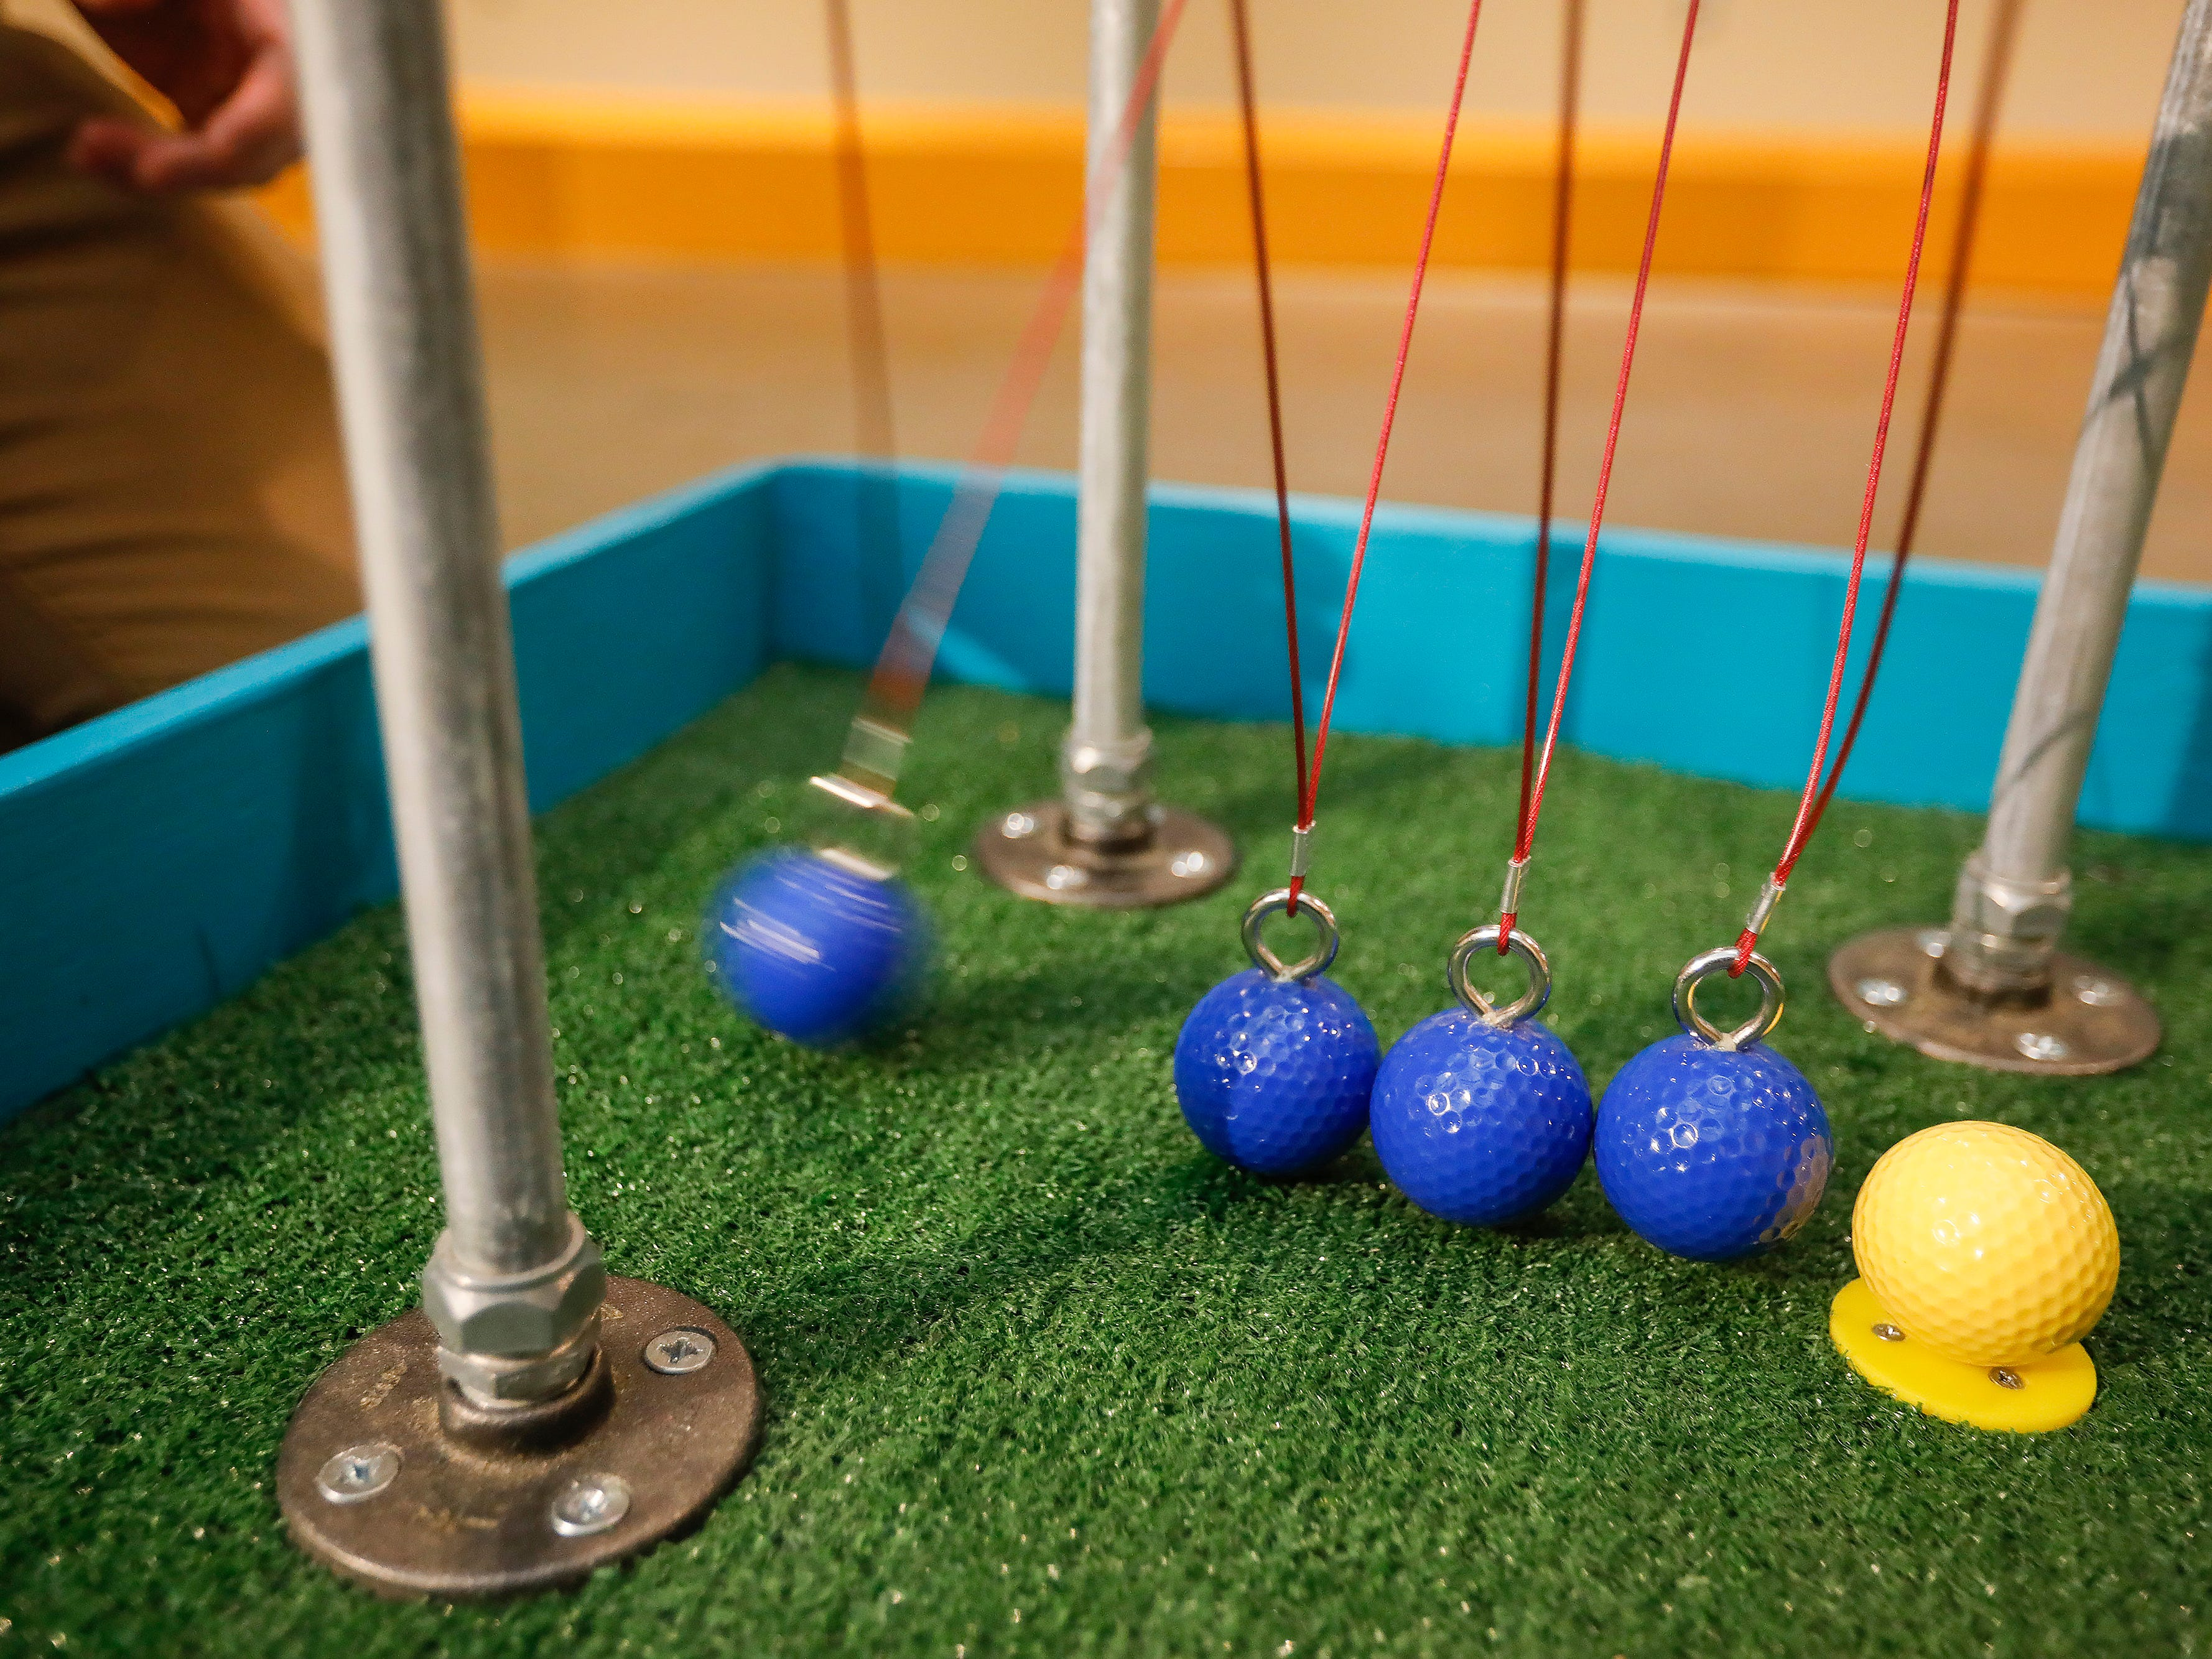 Rob Blevins, executive director at the Discovery Center, uses a Newton's cradle to take his shot at the new 9-hole indoor miniature golf course at the science museum. The new exhibit opens to the public on Sunday, March 31, 2019.